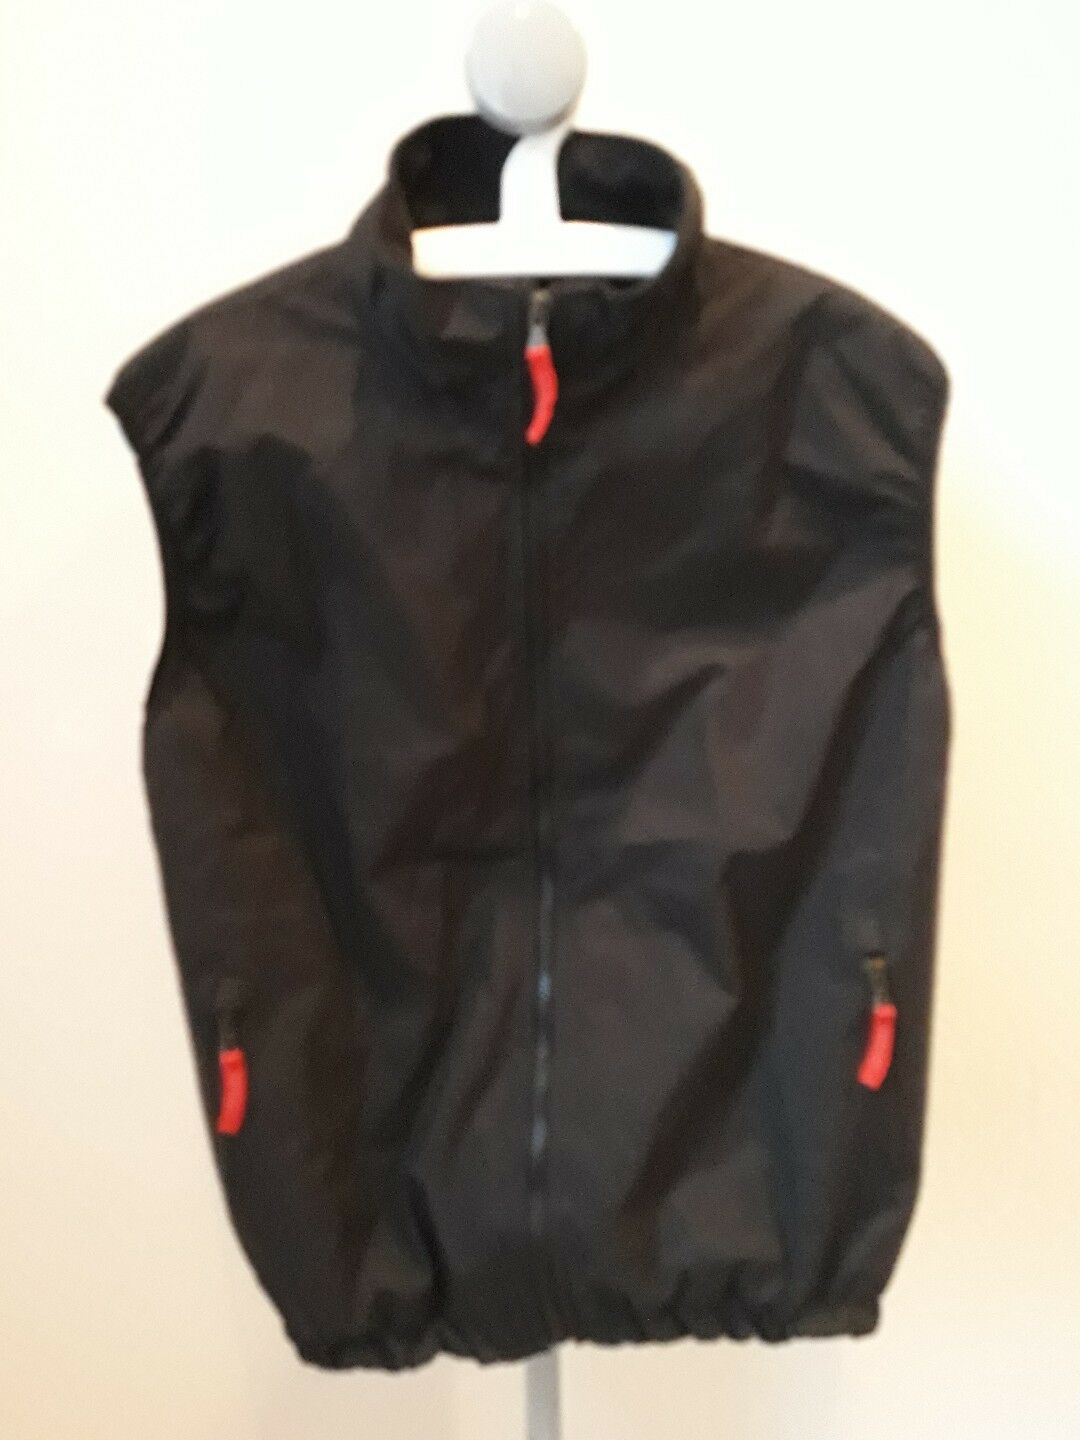 AirDown Inflatable Gilet waterproof windproof hiking walking XS Extra Small